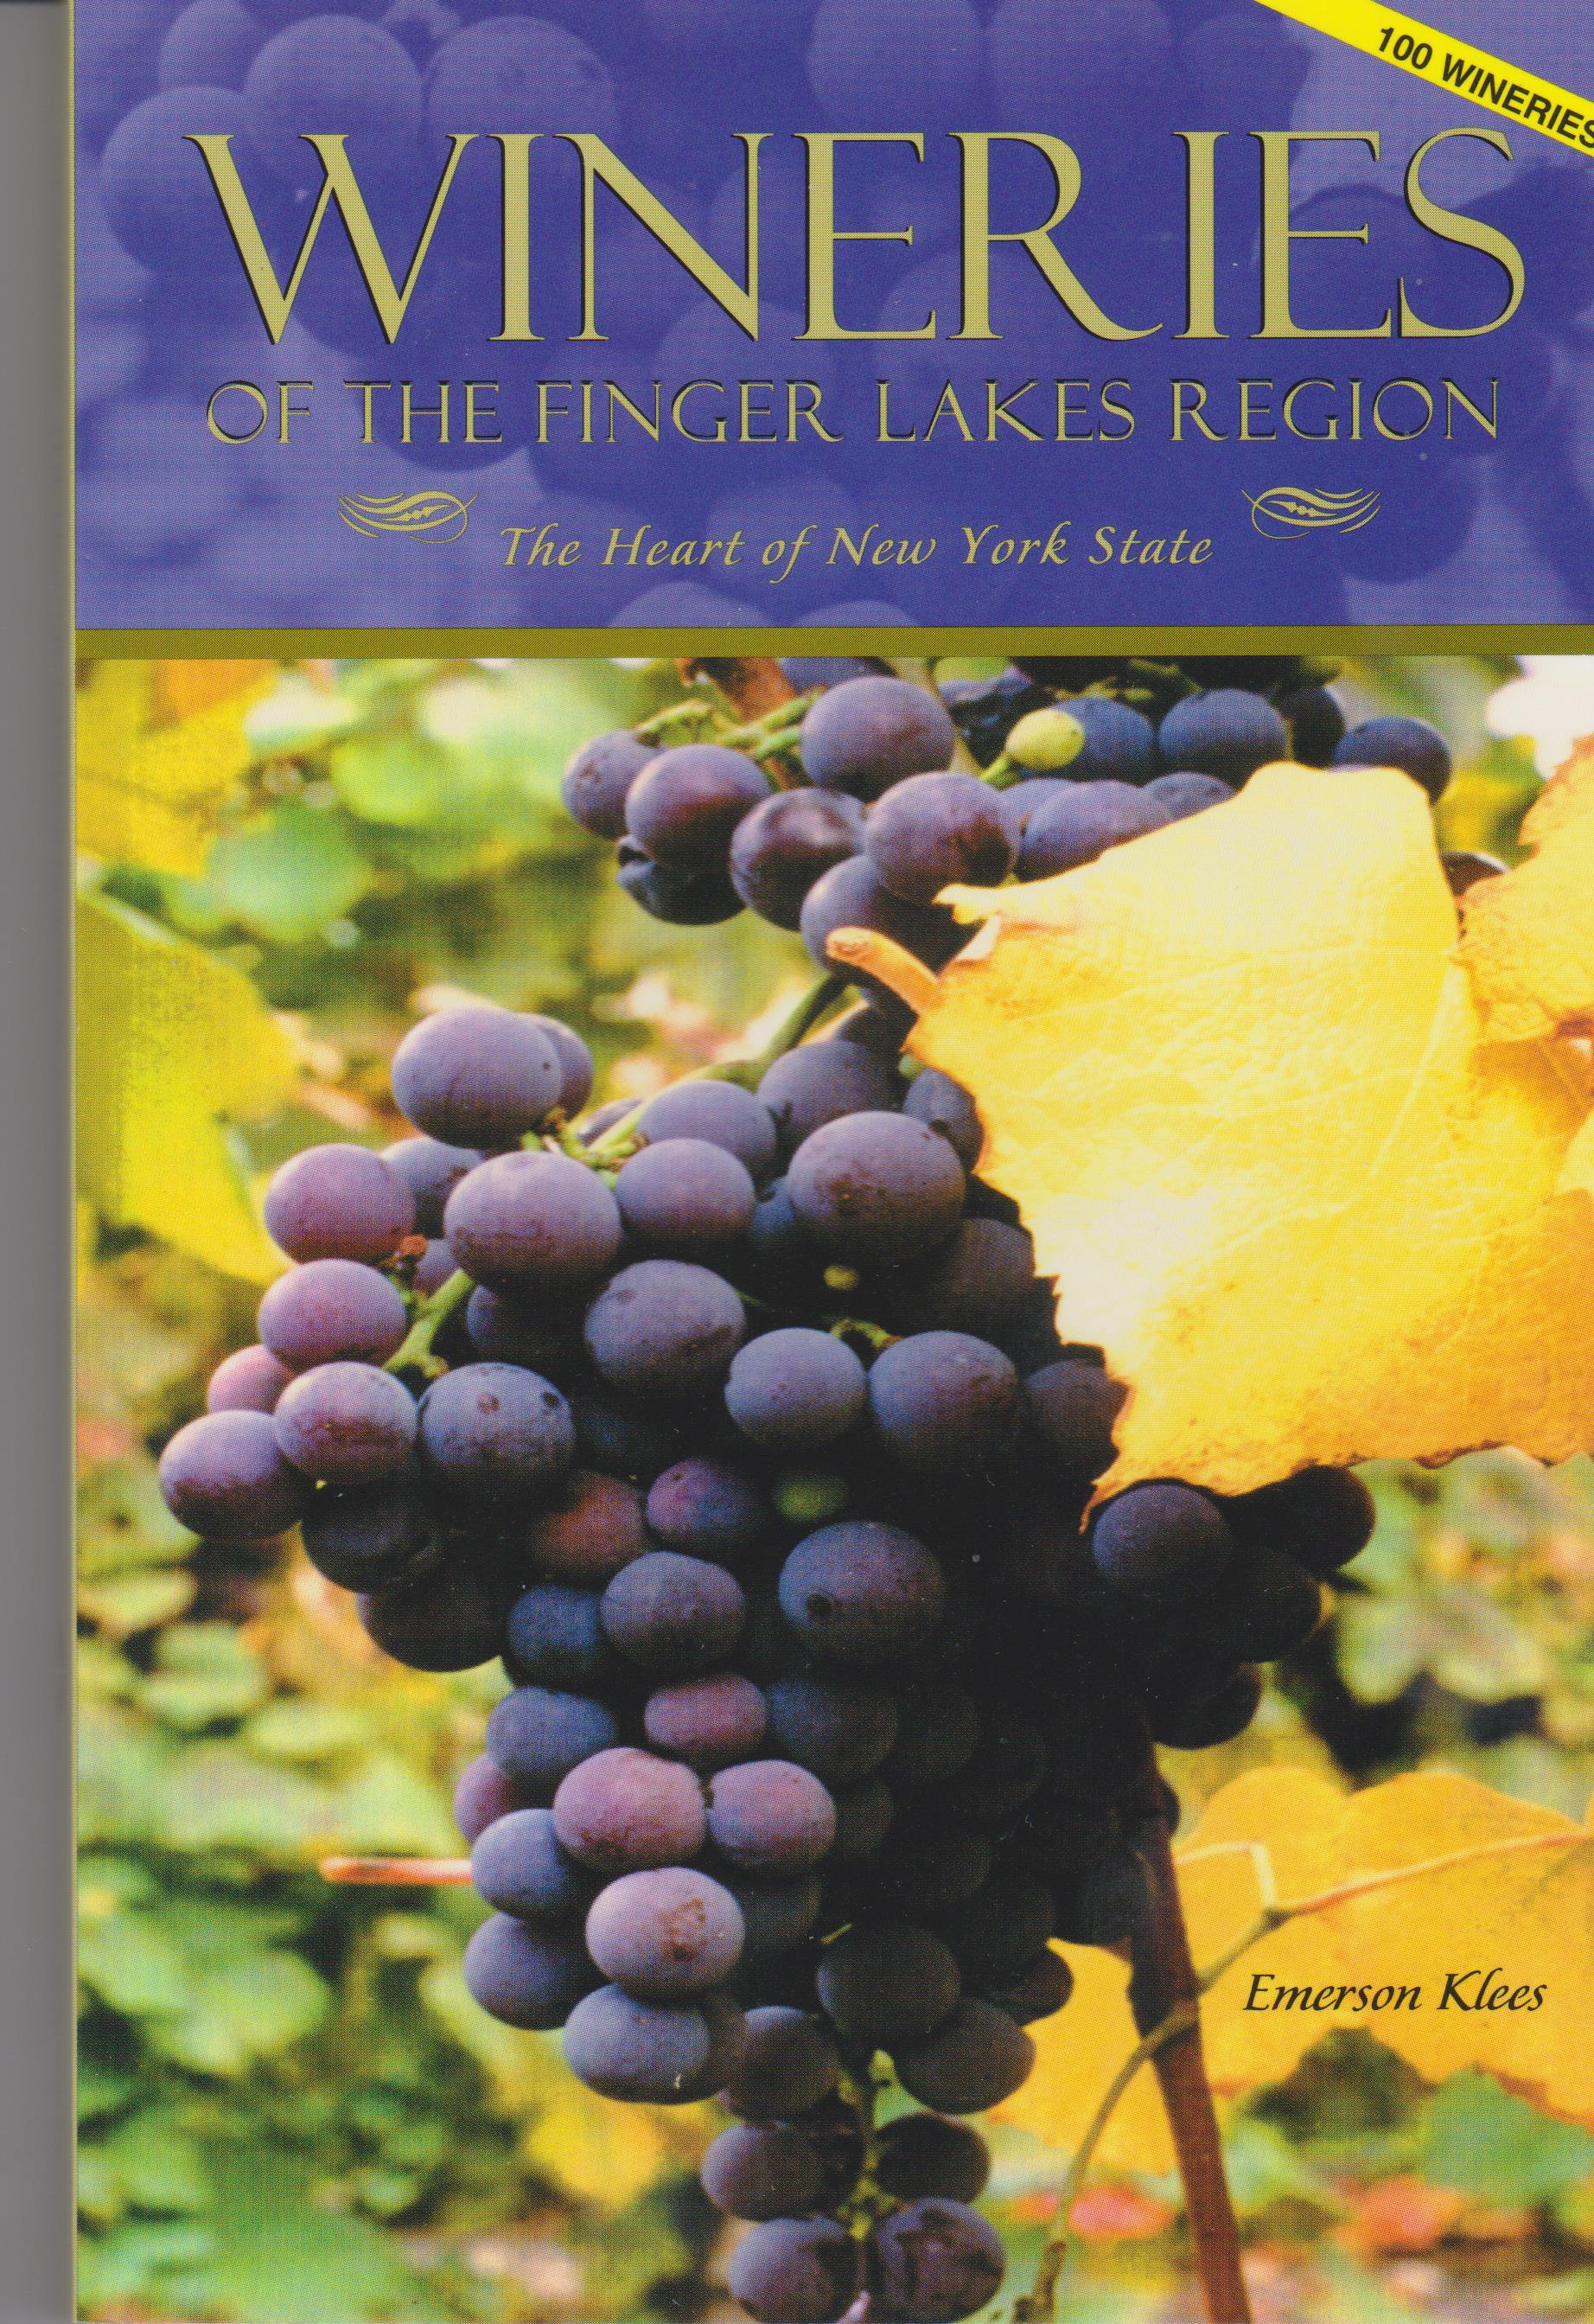 Wineries of the Finger Lakes Region--100 Wineries